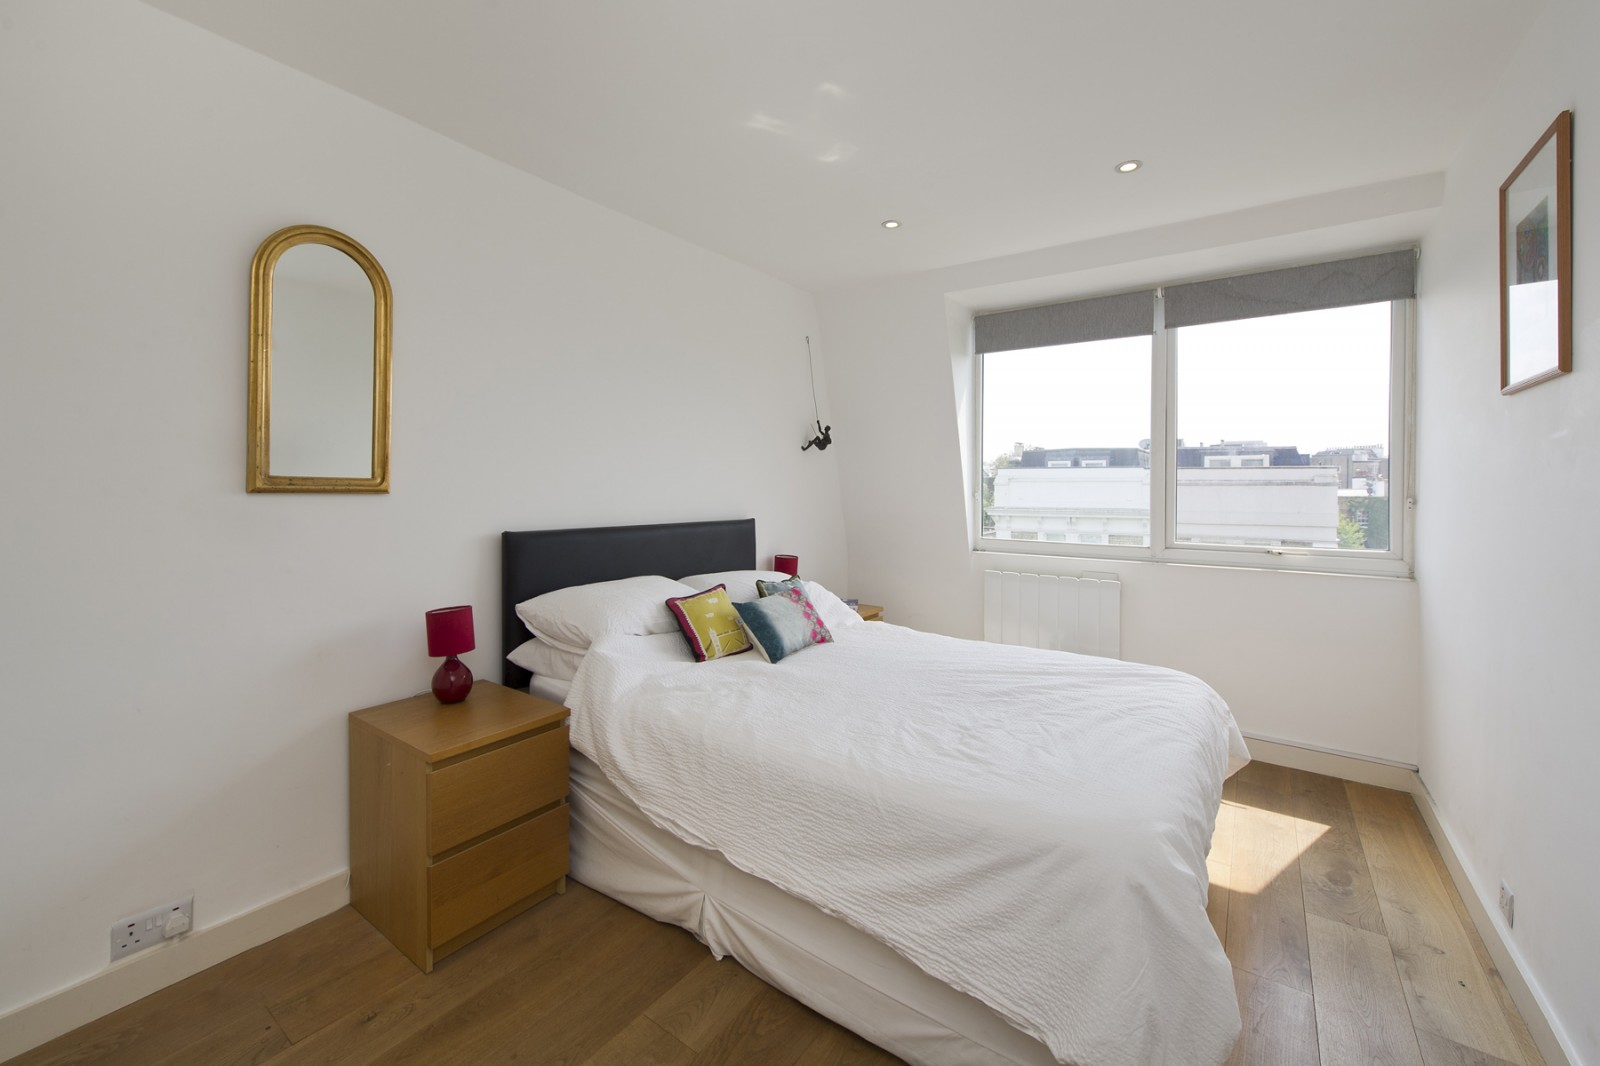 2 bedroom Notting Hill flat to rent - Giles House ...